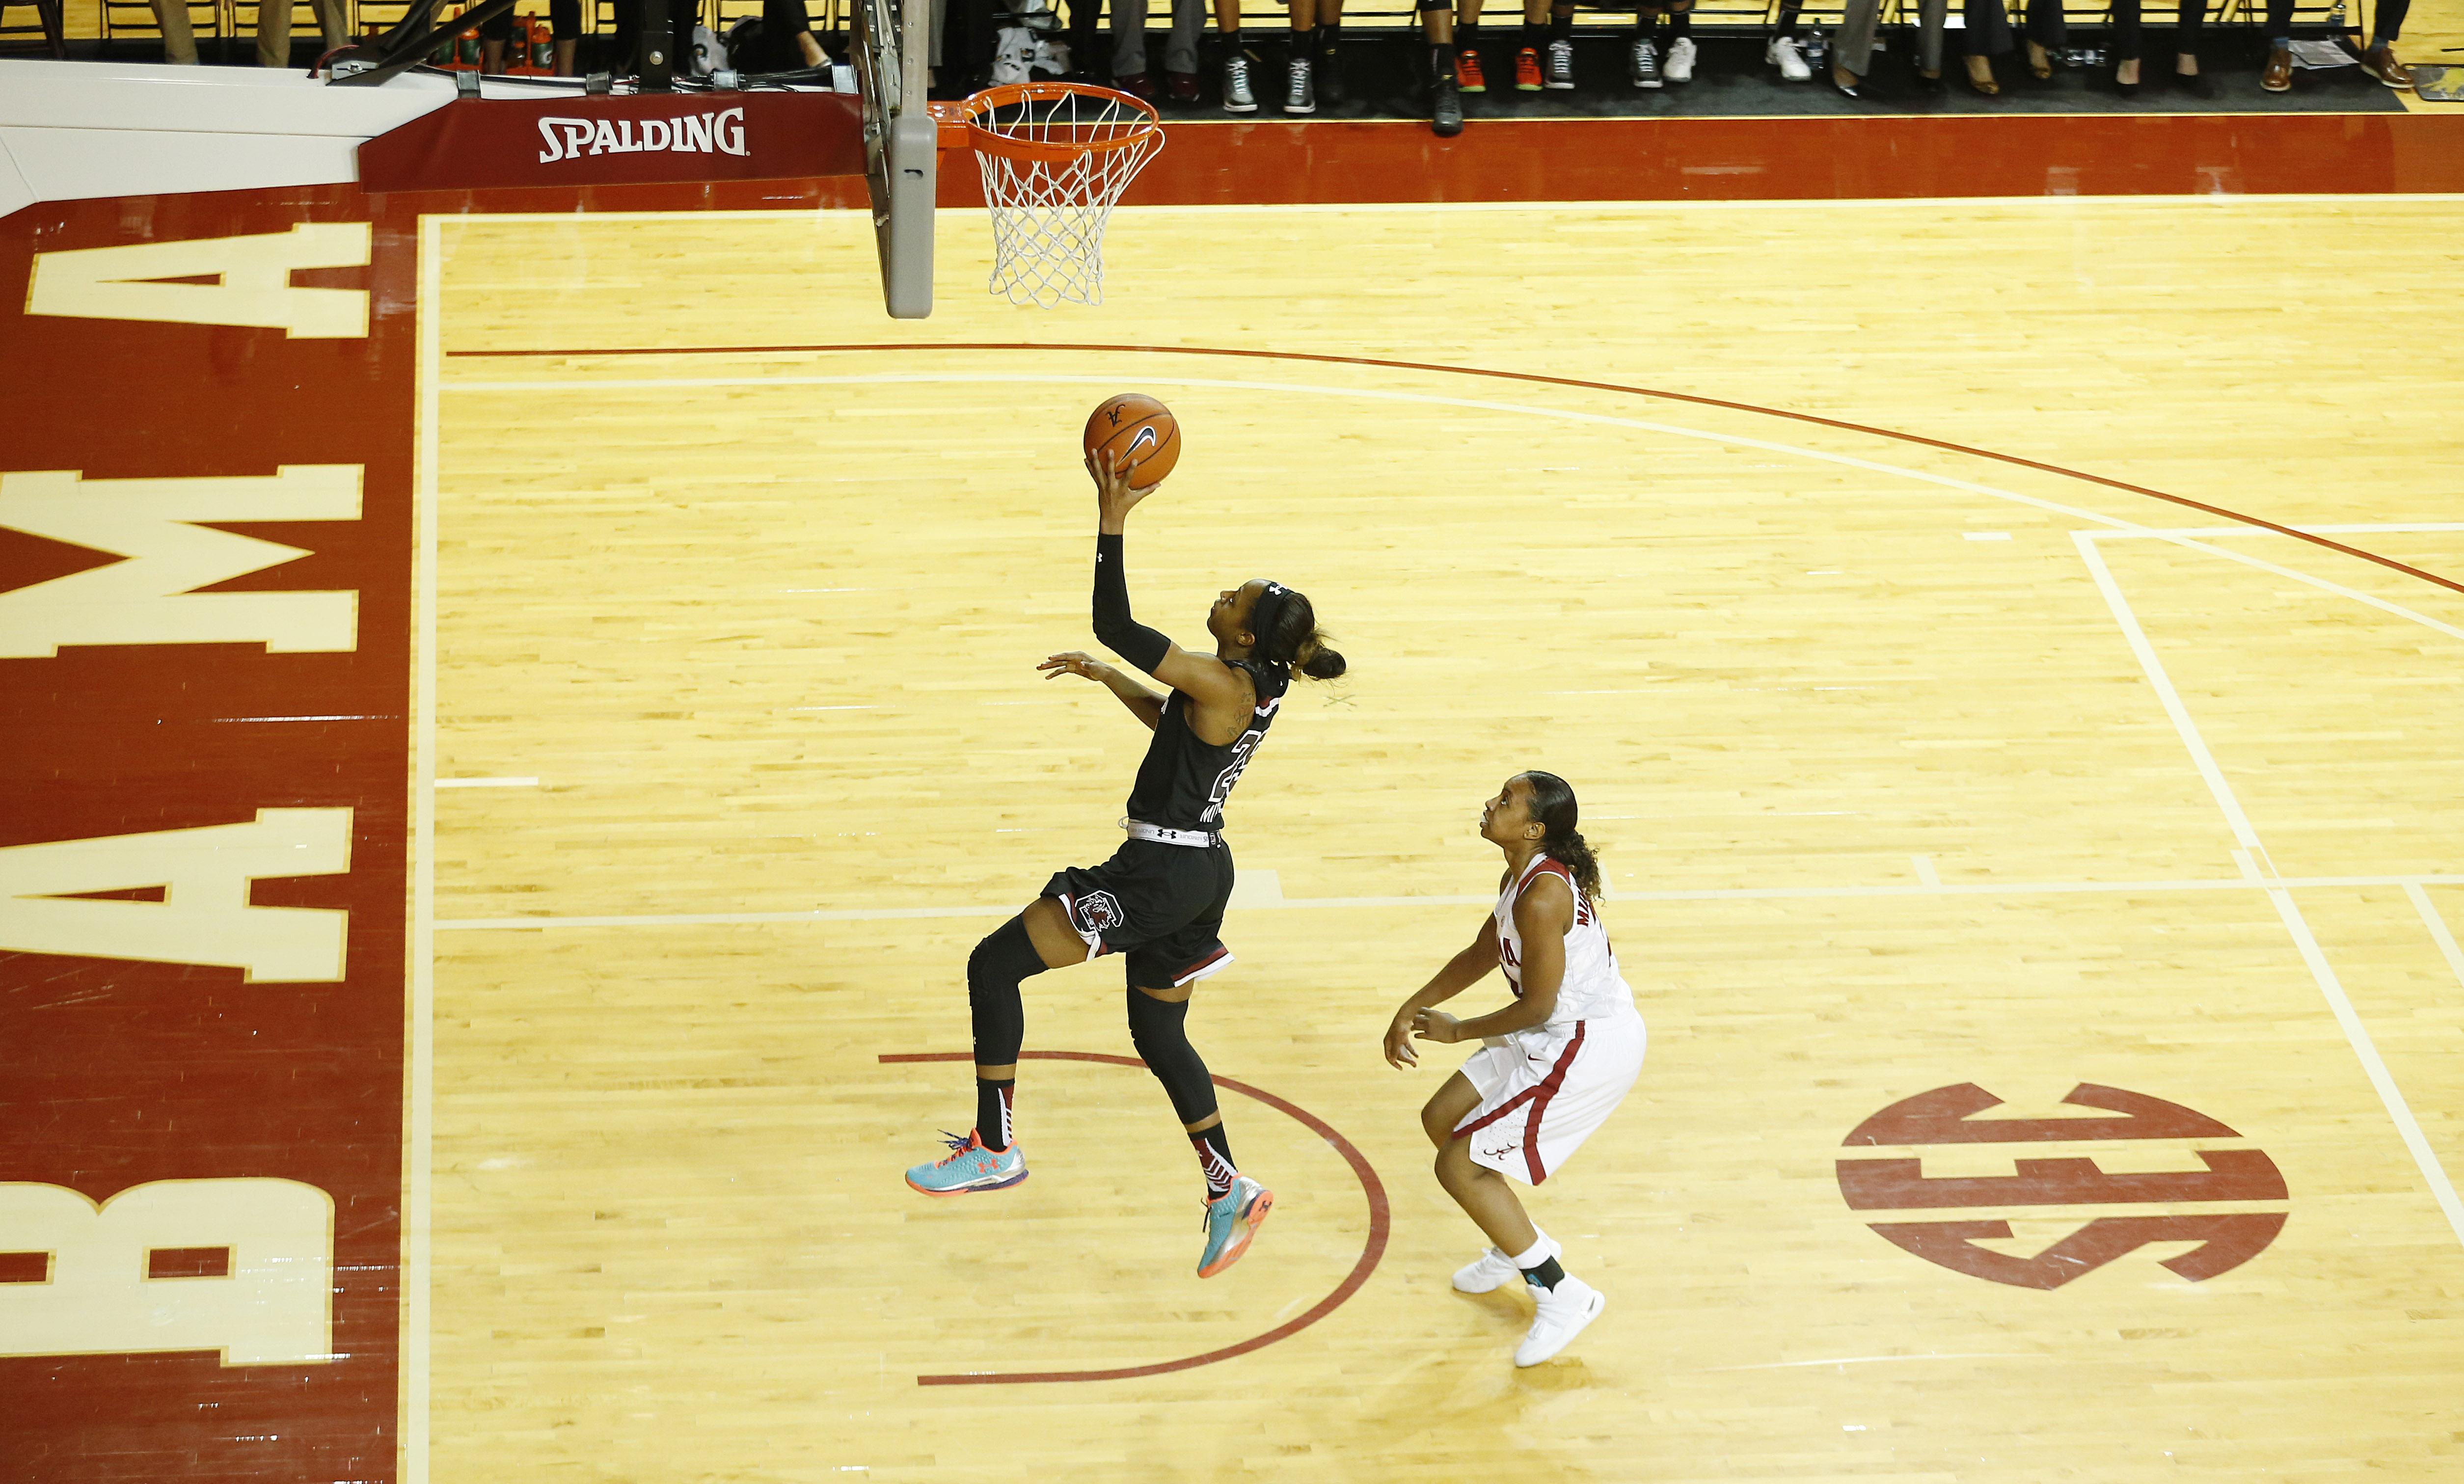 South Carolina guard Tiffany Mitchell, left, drives the ball to the basket and scores against Alabama guard Karyla Middlebrook, right, during the second half of an NCAA college basketball game, Monday, Feb. 22, 2016, in Tuscaloosa, Ala. (AP Photo/Brynn An